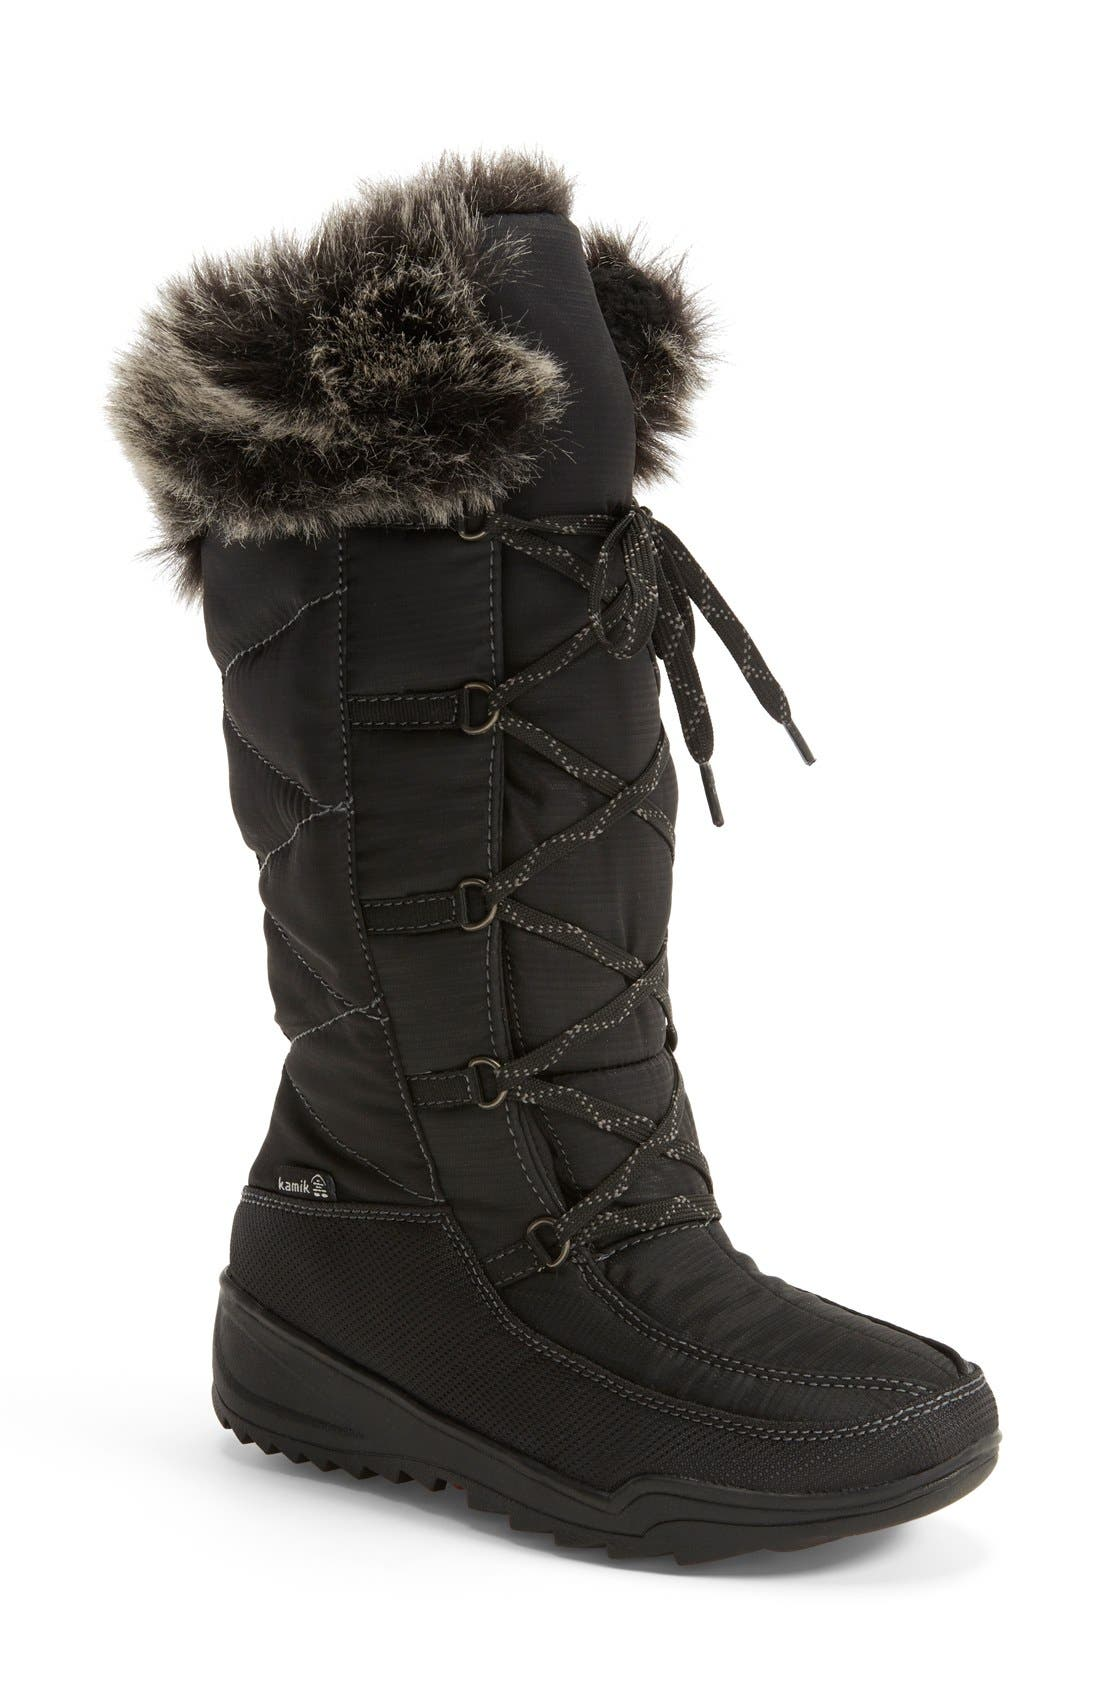 KAMIK 'Porto' Waterproof Winter Boot